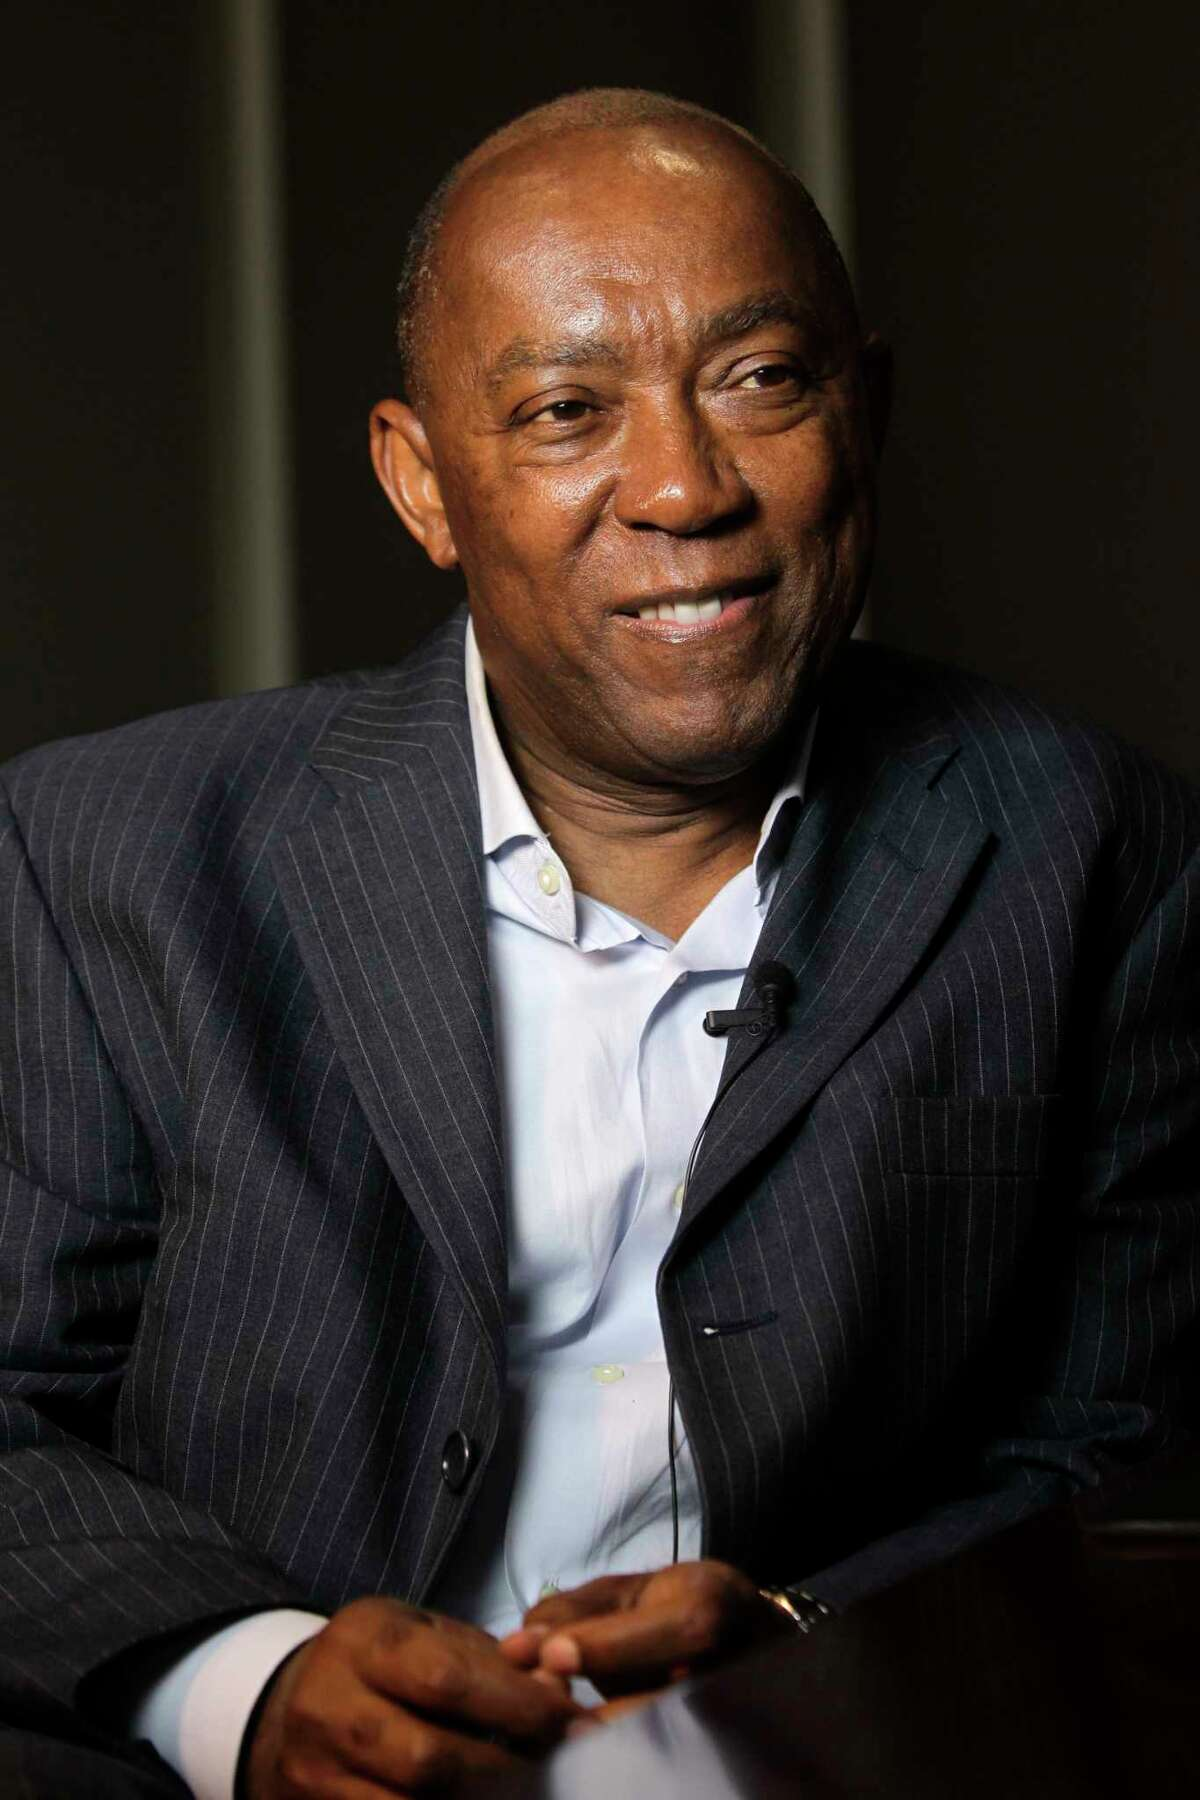 FILE - City of Houston mayor-elect Sylvester Turner speaks during an interview on Dec. 13, 2015 in Houston, Texas. Turner, alongside other mayors across the U.S., is pledging to honor the 2015 Paris Agreement despite President Donald Trump's announcement he would withdraw.